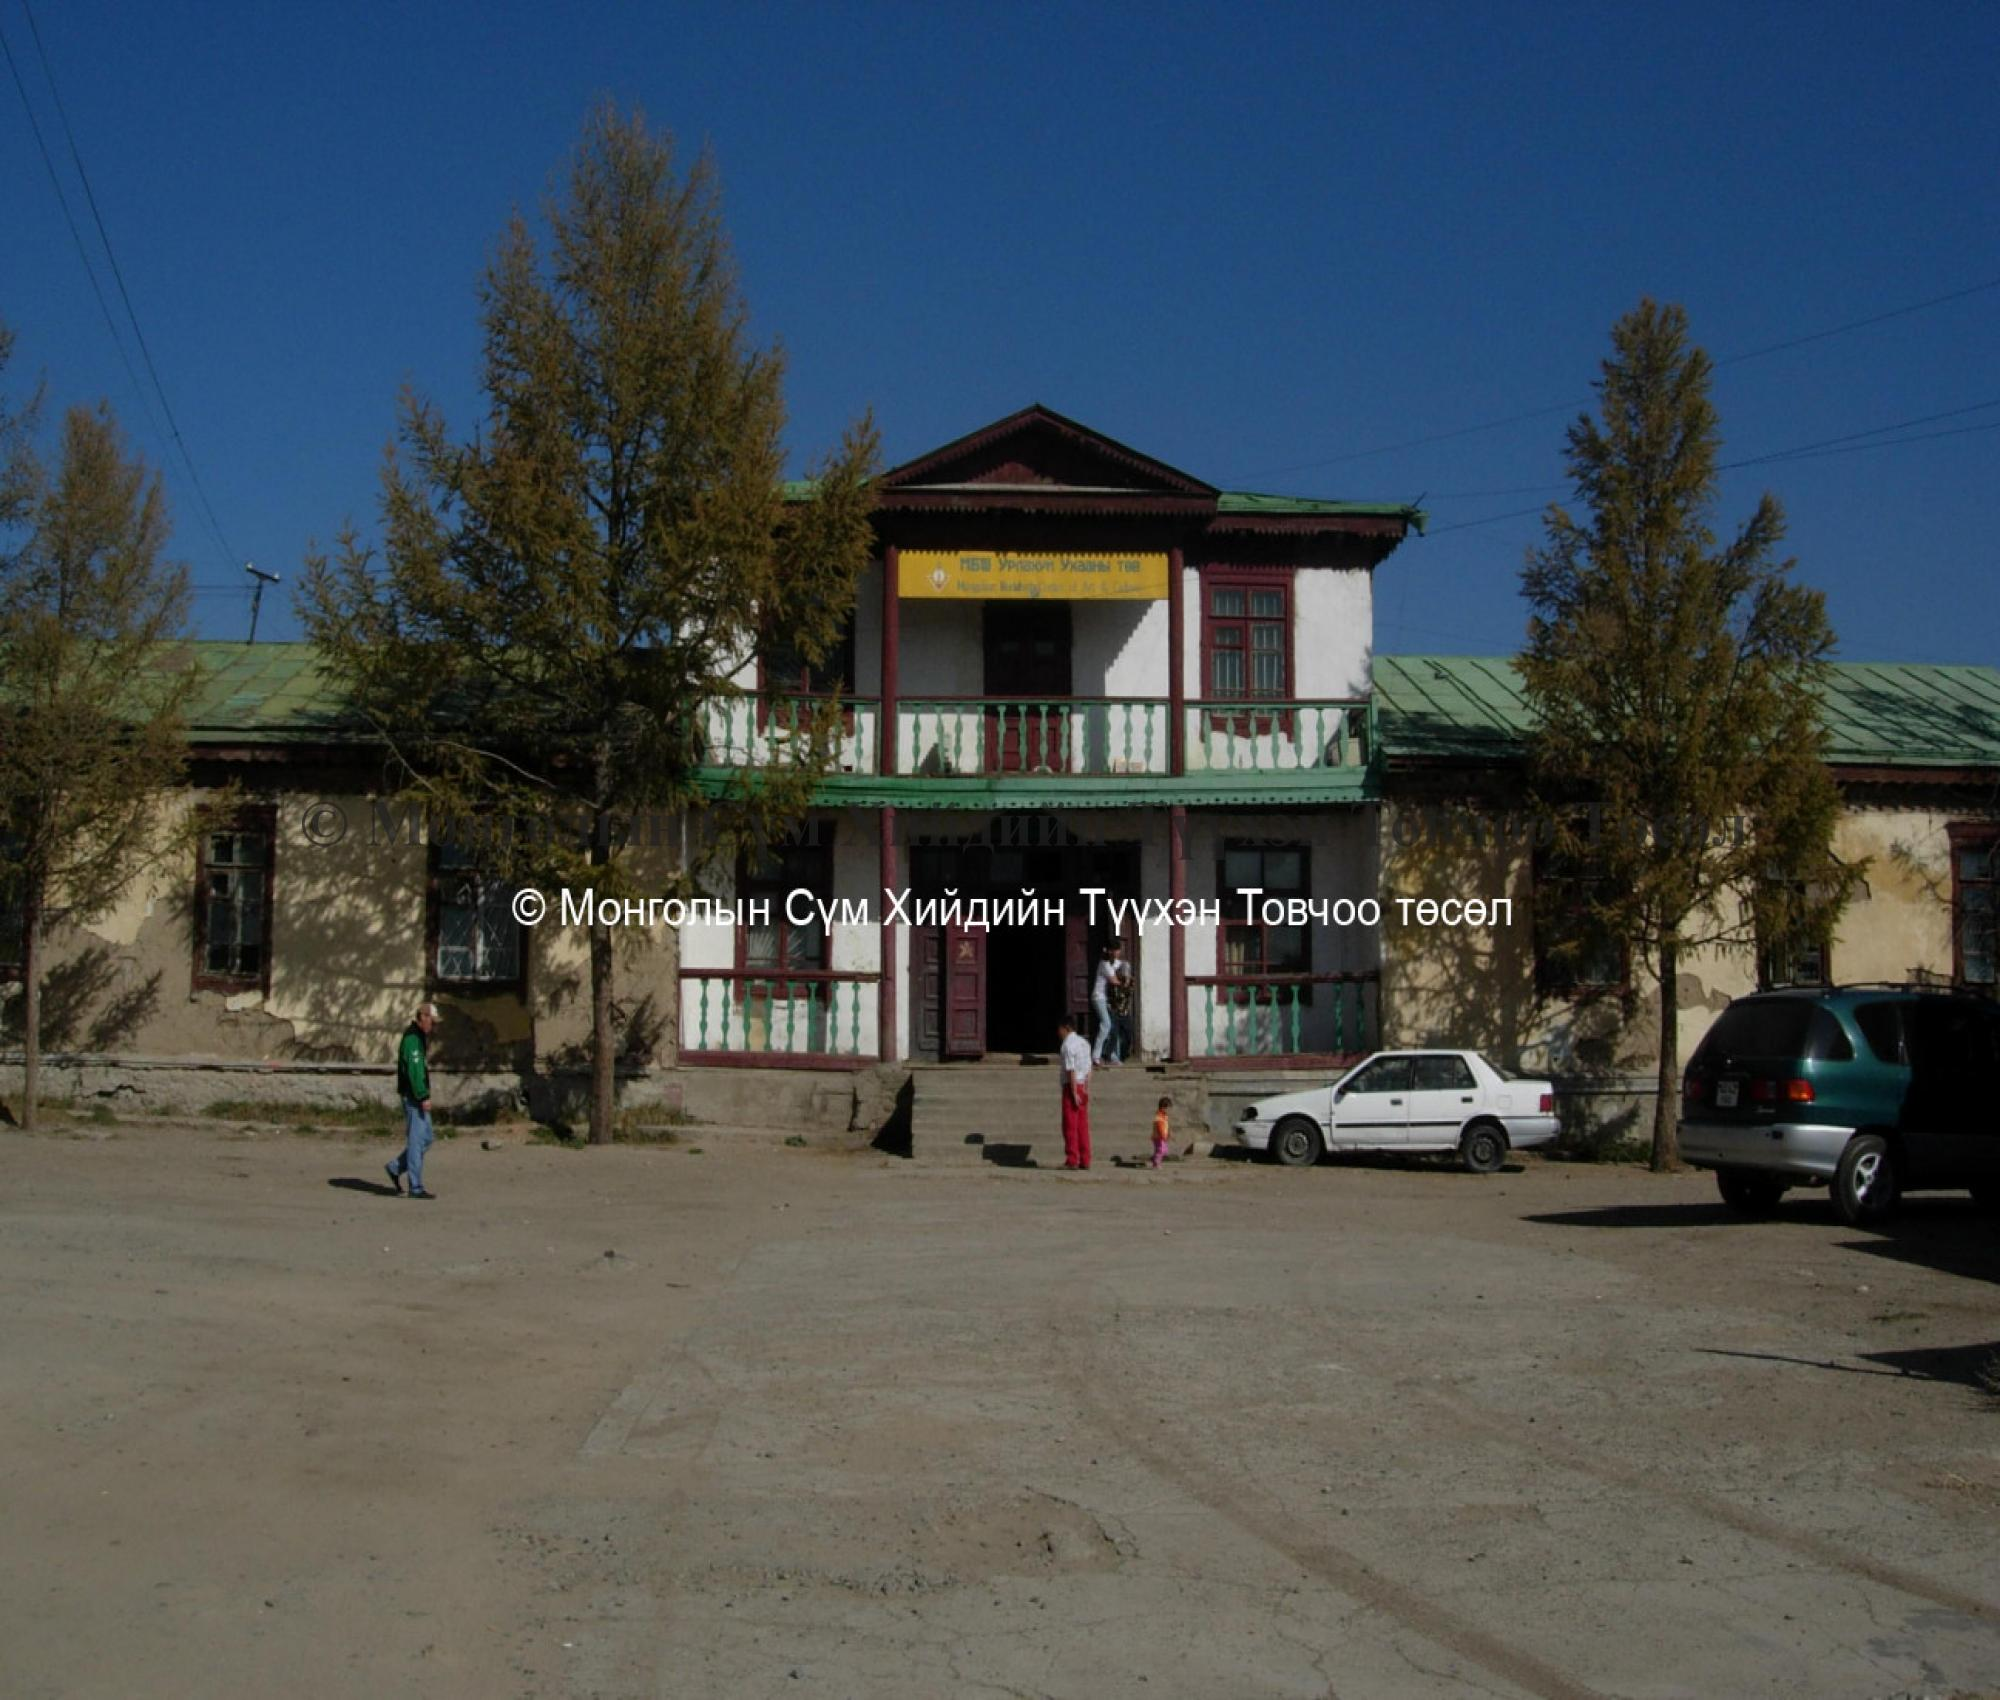 Mongolian Institute of Buddhist Art situated in th